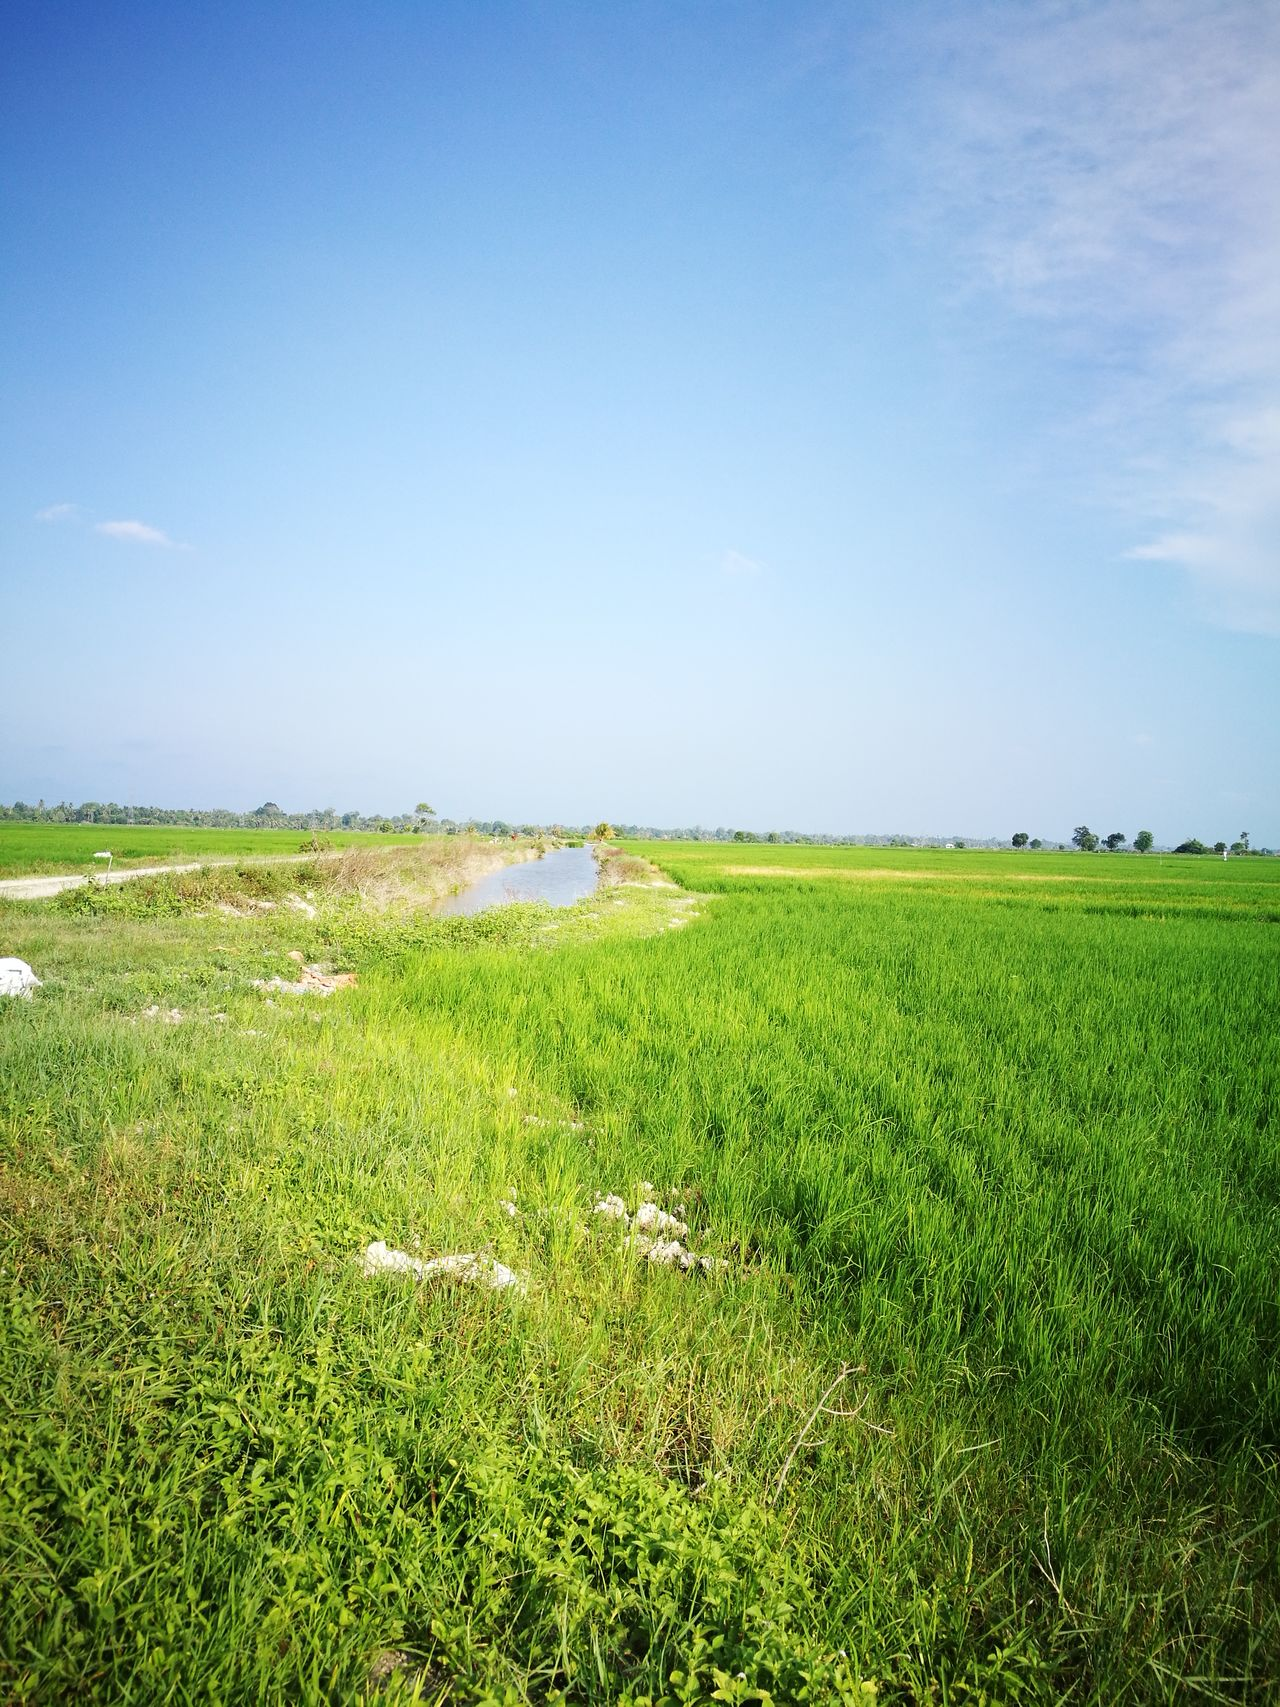 The famer farm...(paddy) Sky Field Green Color Beauty In Nature Landscape Archival Sunlight Social Issues Outdoors Tranquility Scenics Clear Sky Farm Agriculture Rural Scene Growth Plant Day Blue Nature Sports Track Adult First Eyeem Photo Happiness One Man Only